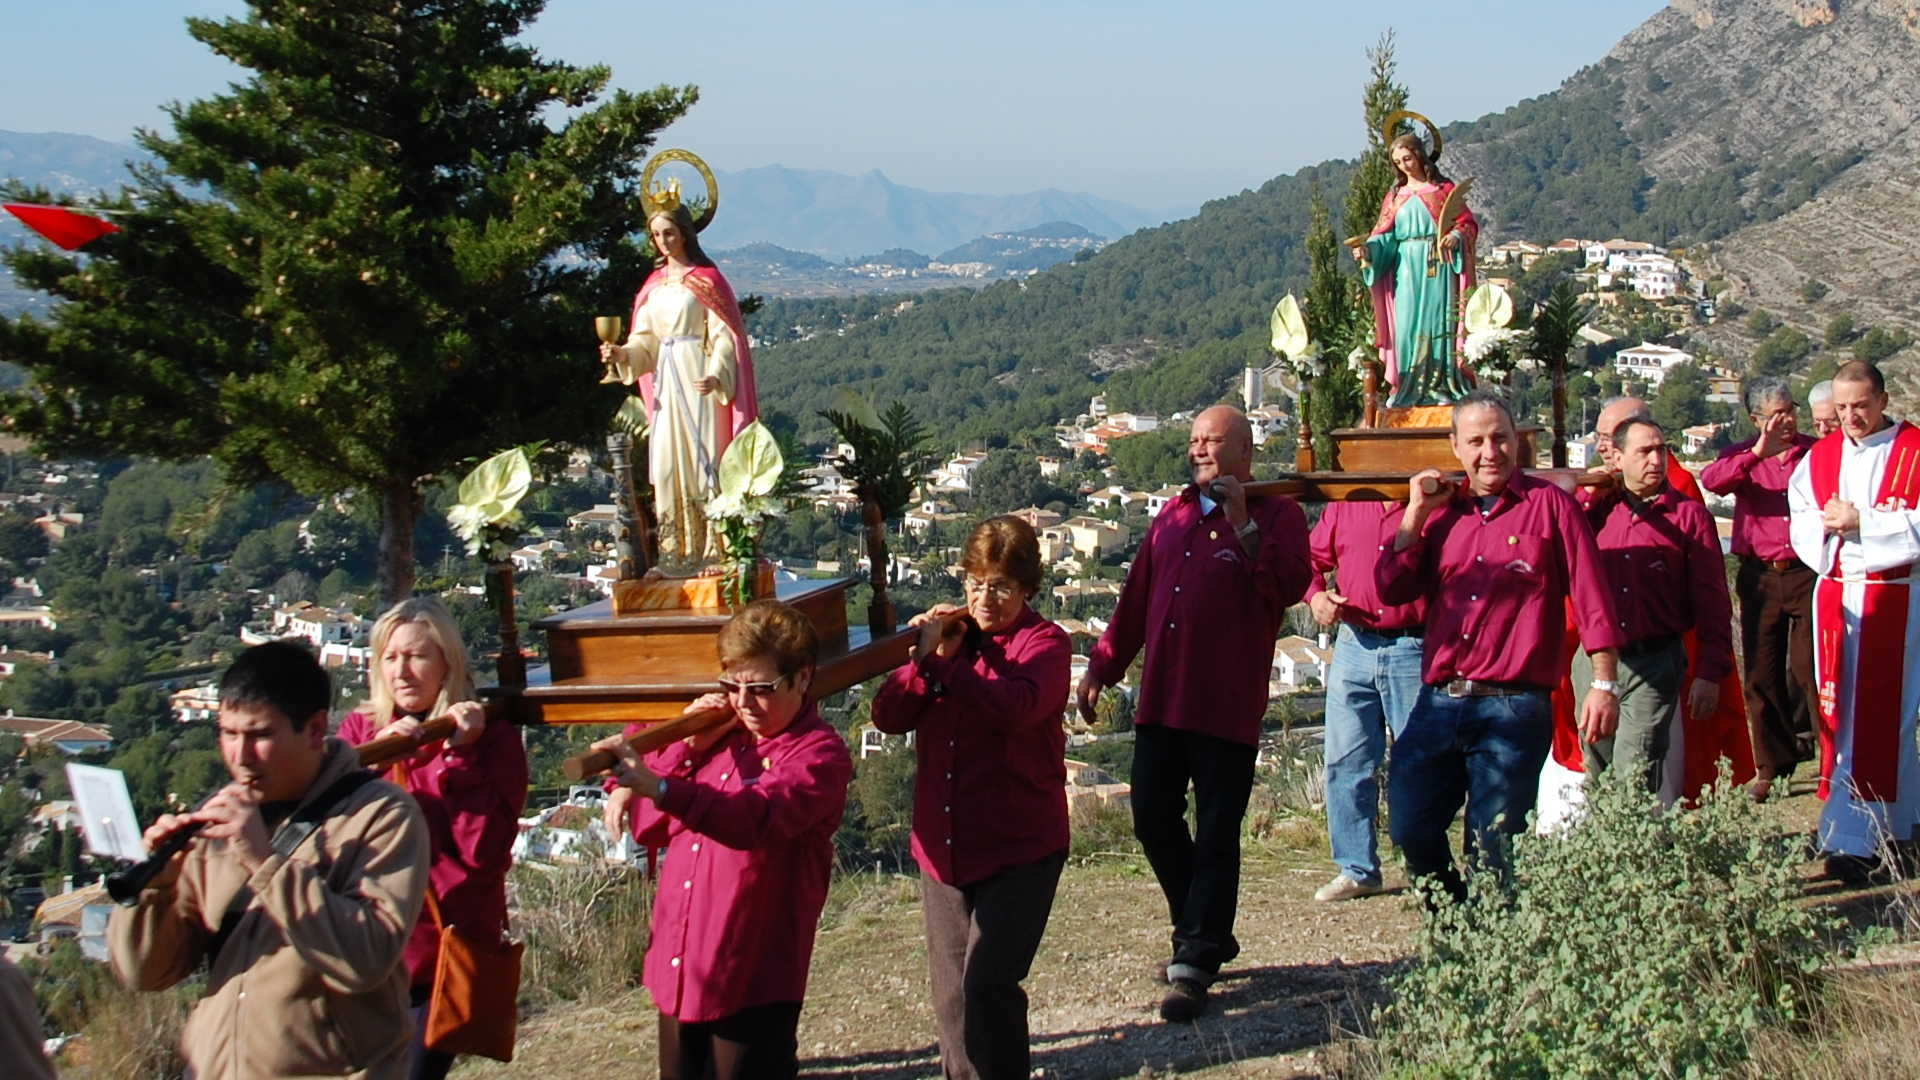 FEAST OF SANTA LLÚCIA